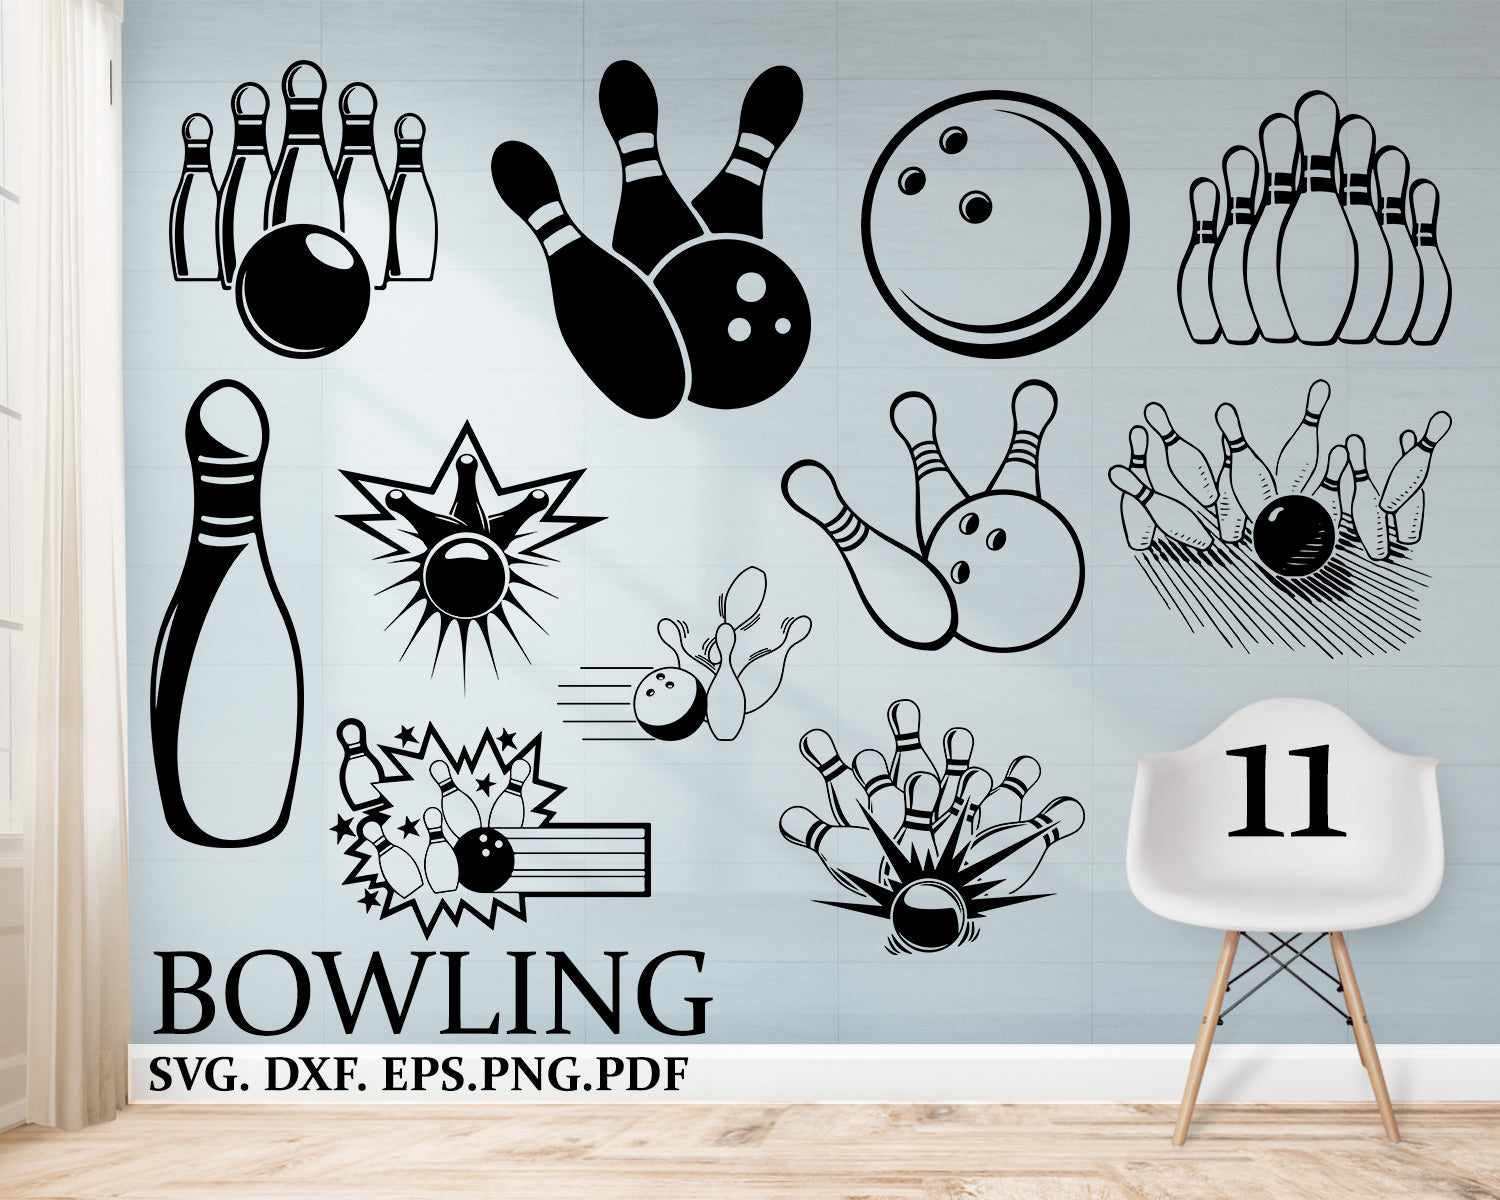 Bowling Svg Bowling Ball Svg Bowling Clipart Cut File Dxf Bowling Clipartic